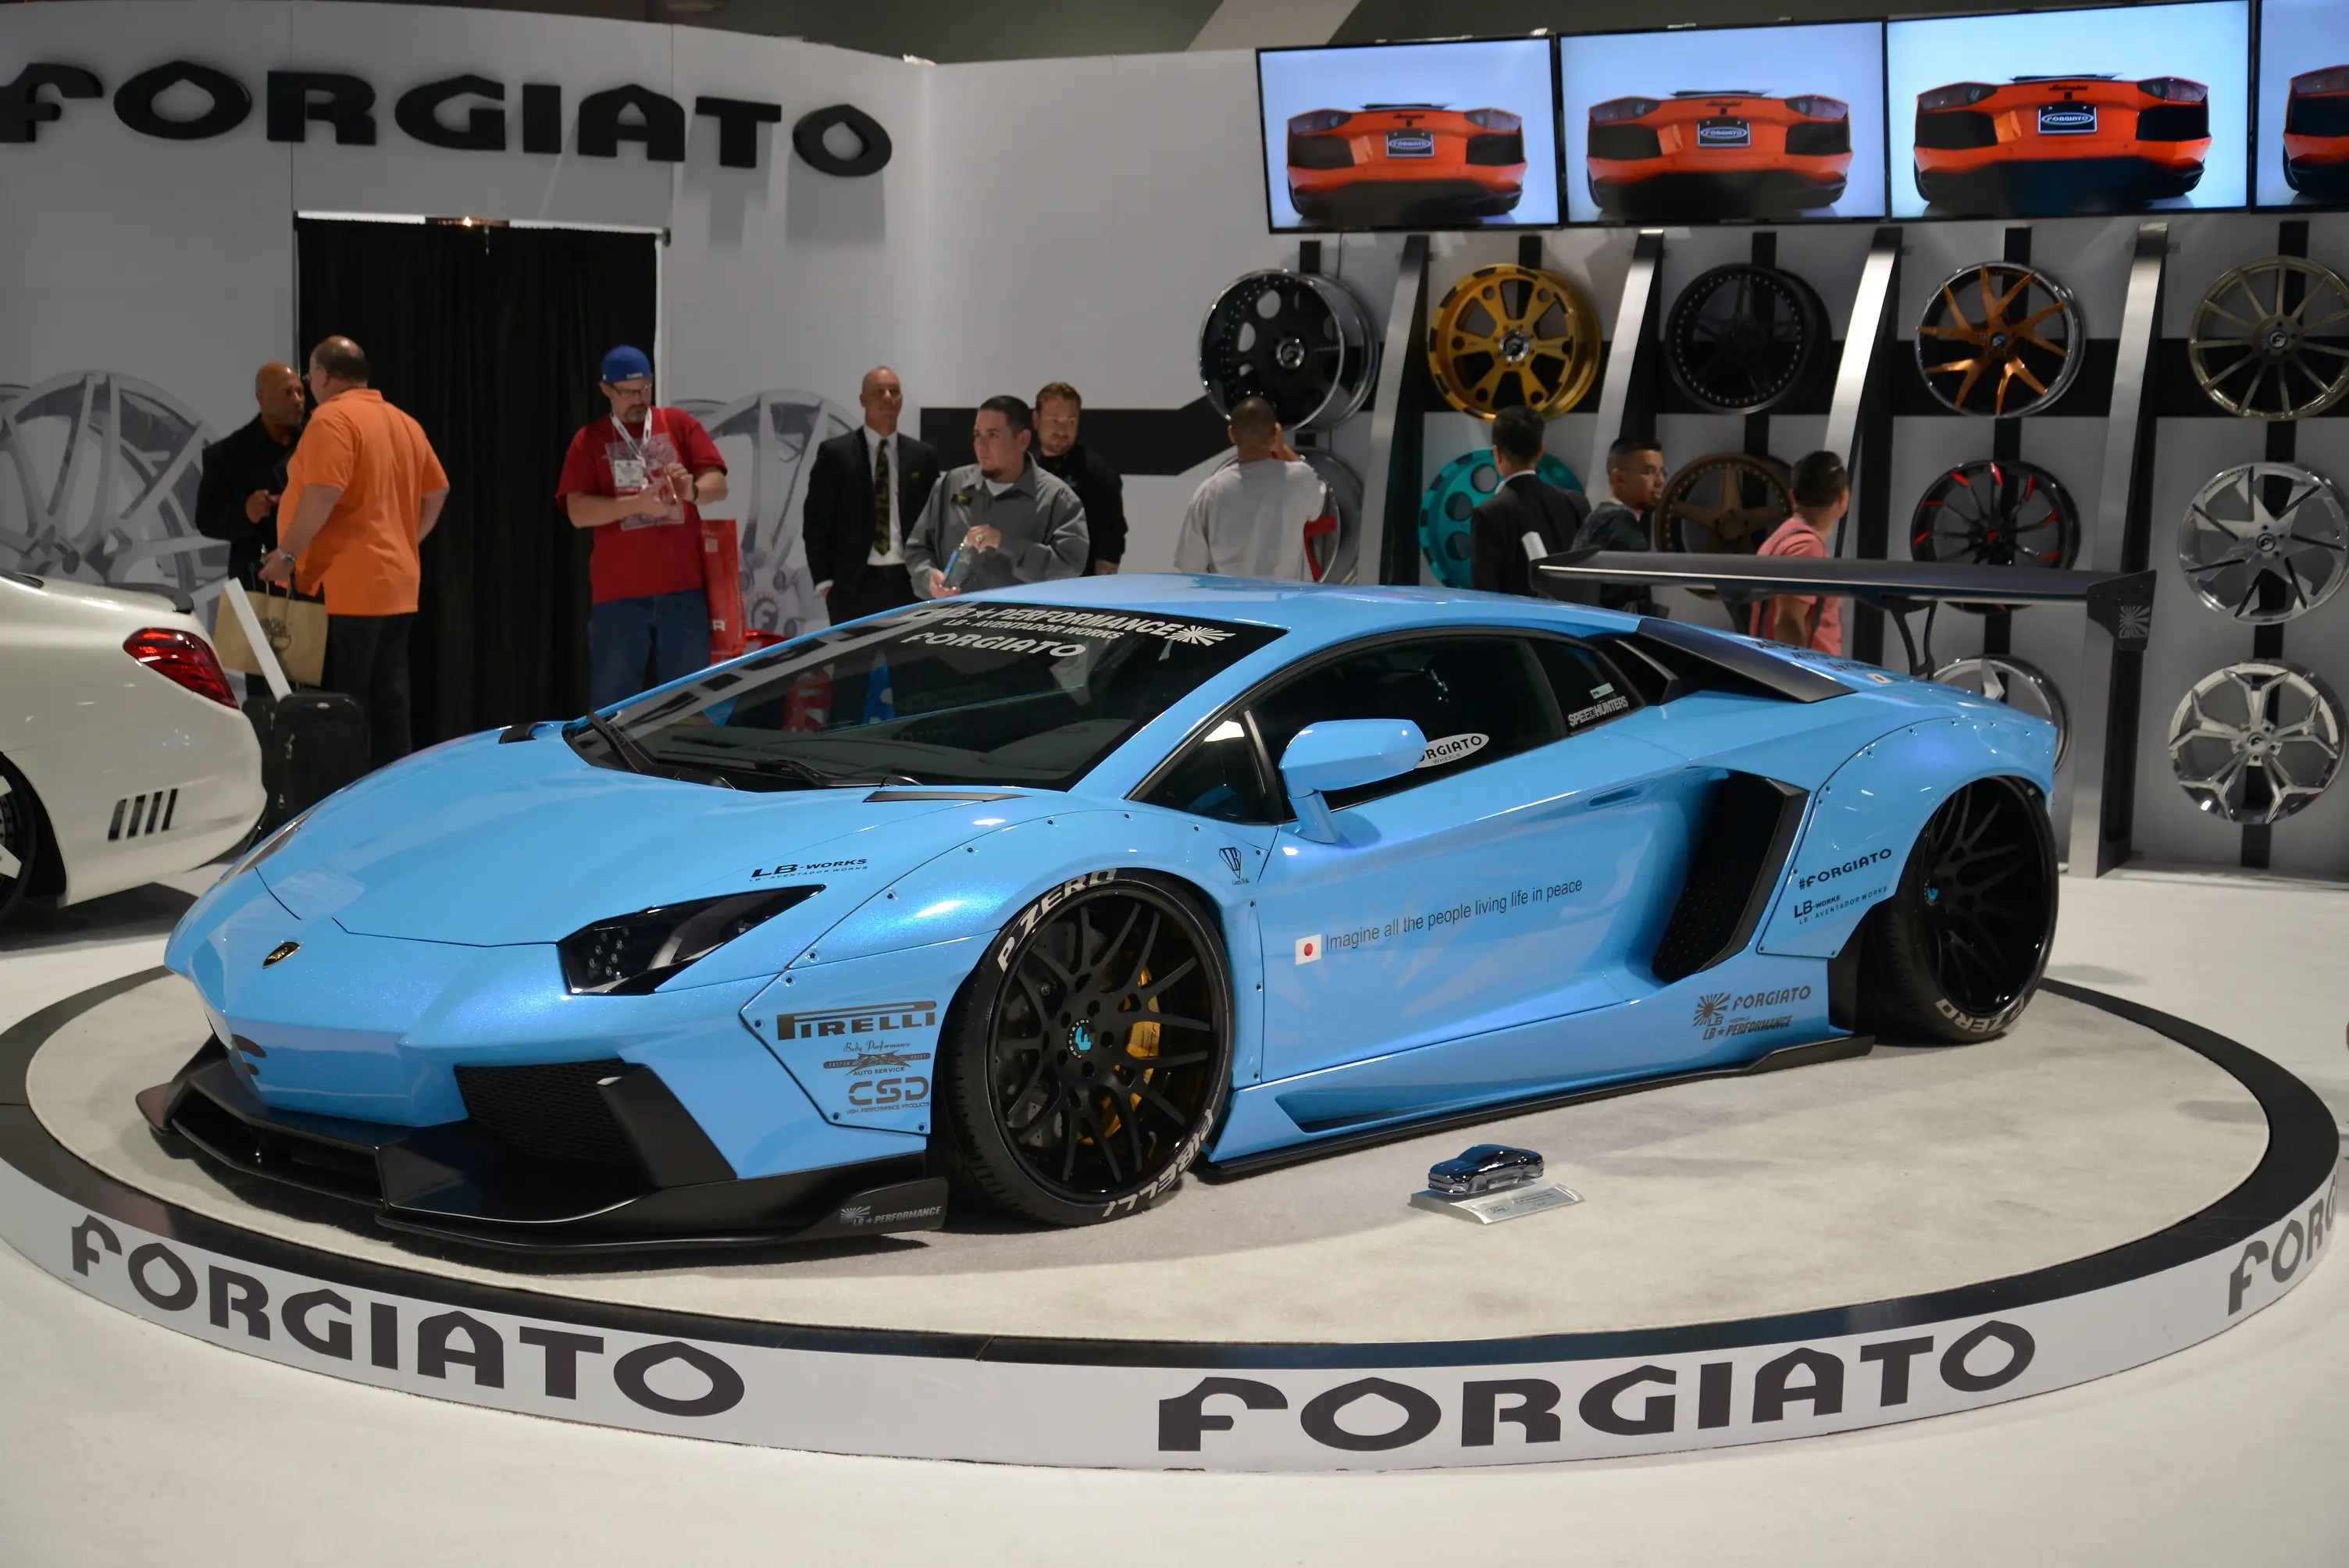 ... or this Lamborghini Aventador with aftermarket Forgiato wheels.